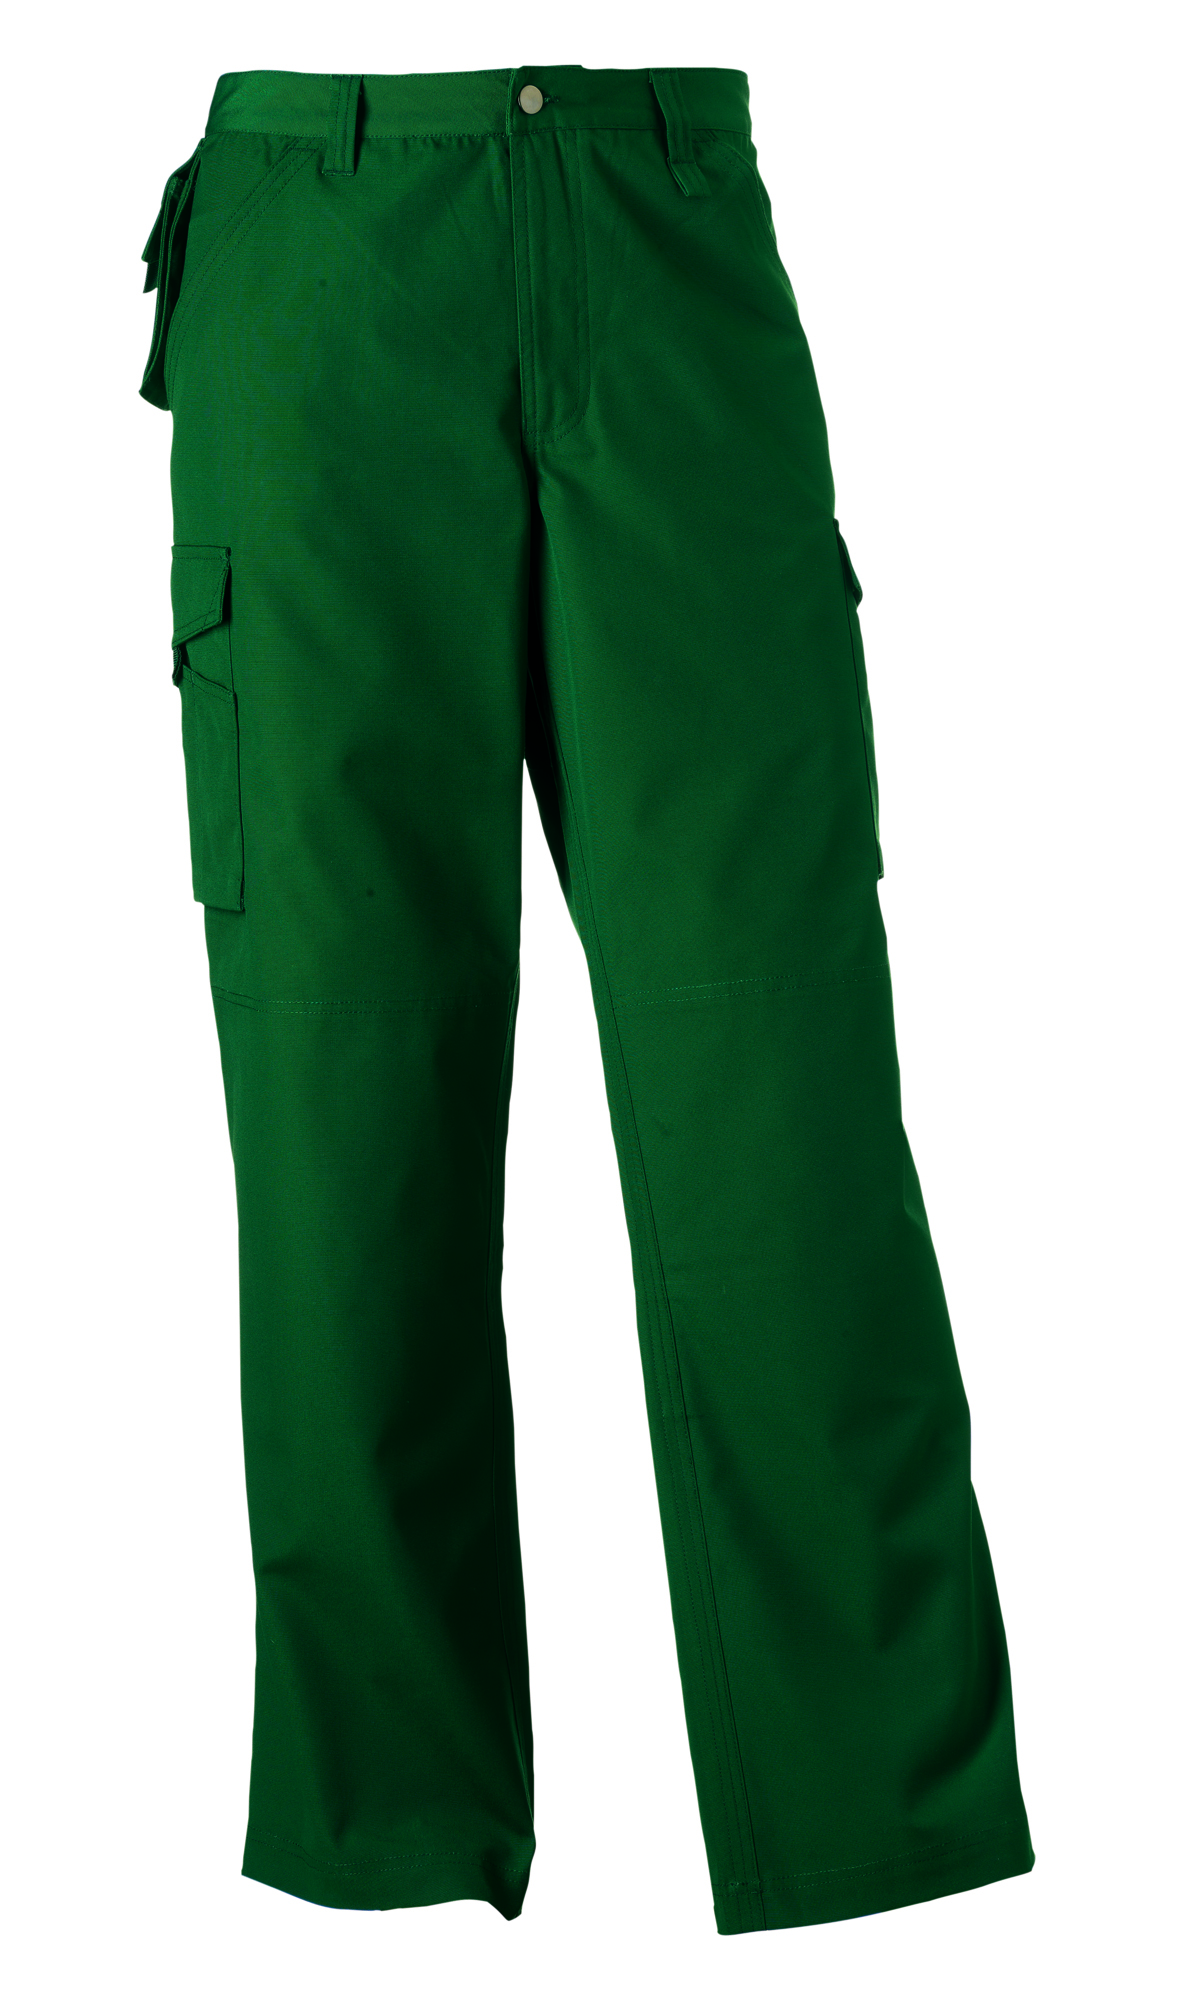 Heavy Duty Trousers  - Bottle Green - 32-30